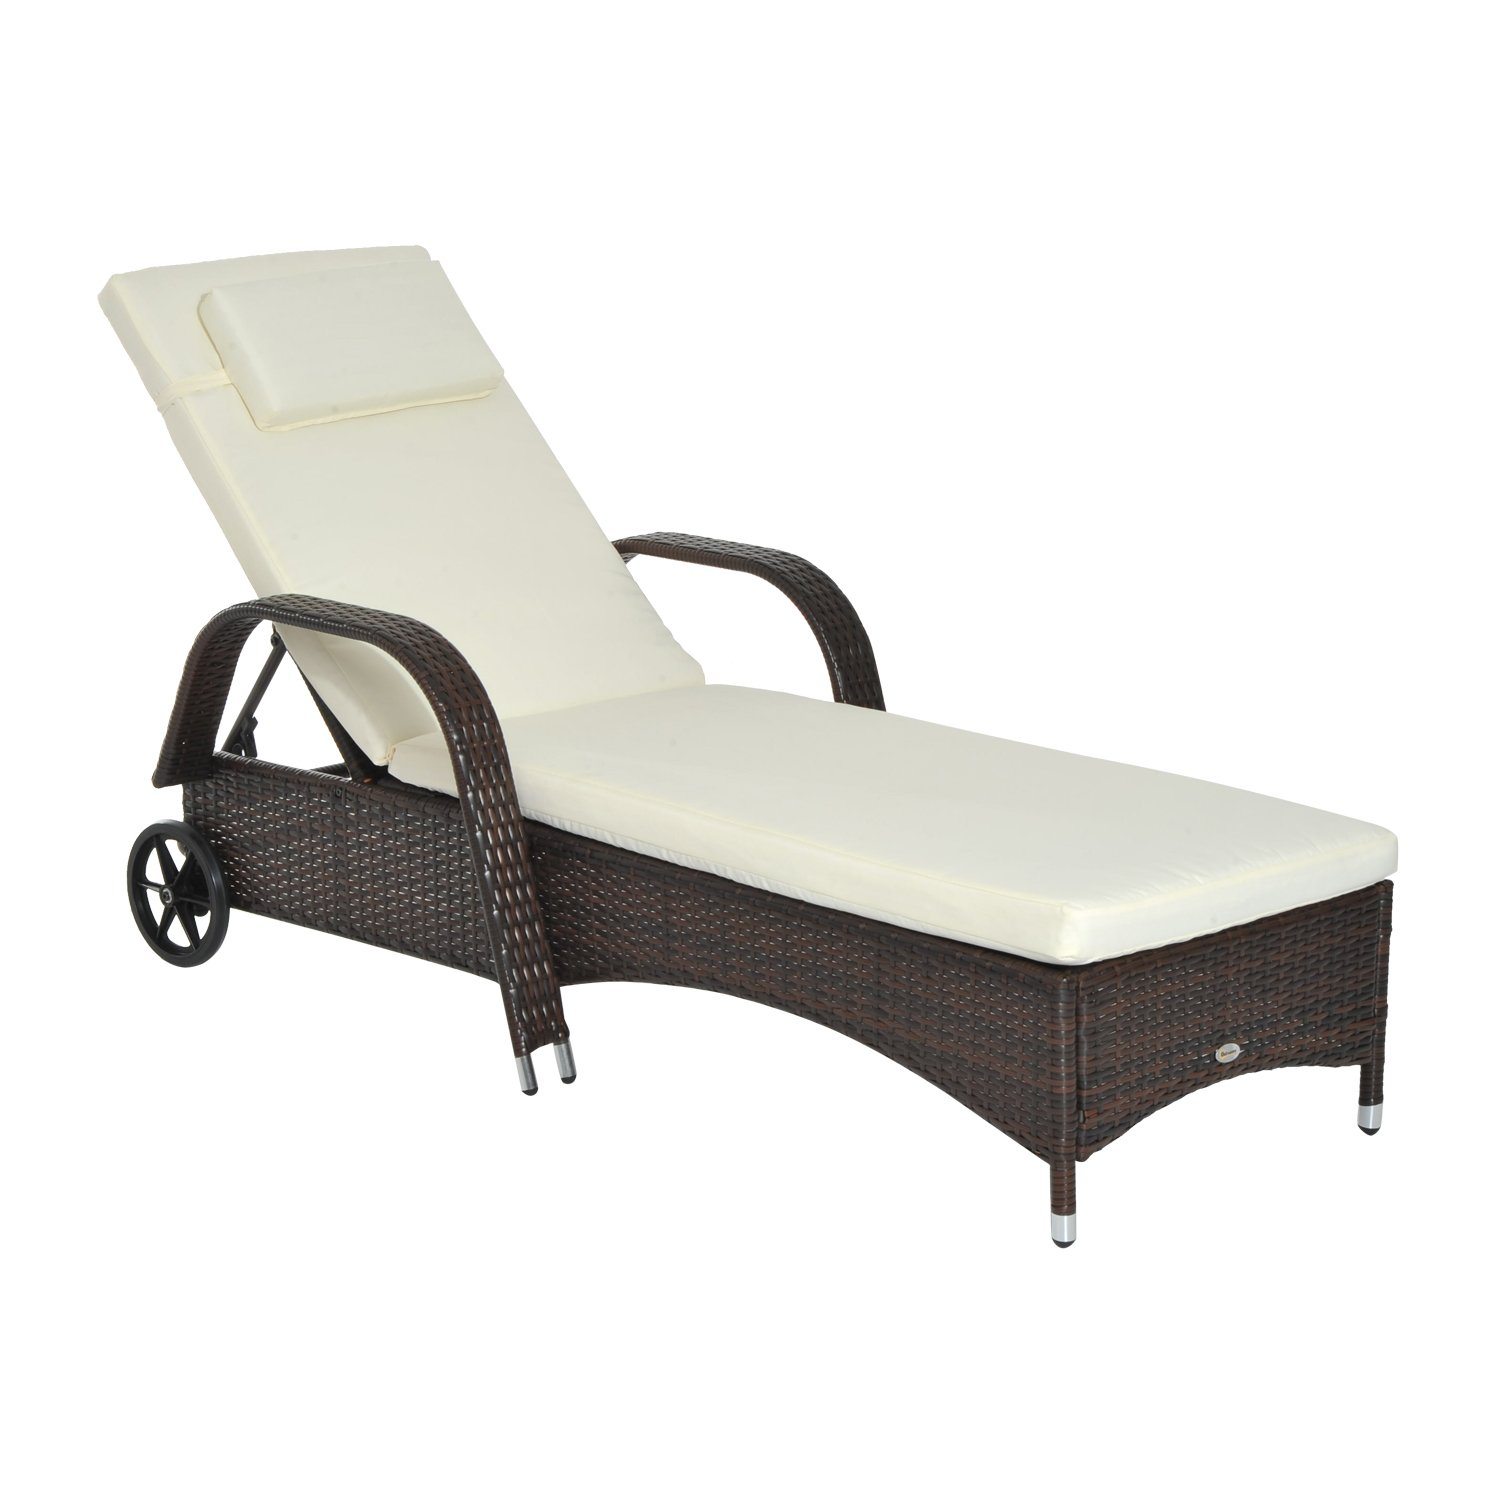 Outsunny Outdoor Adjustable Rattan Wicker Chaise Lounge Chair - Mixed Brown by Outsunny